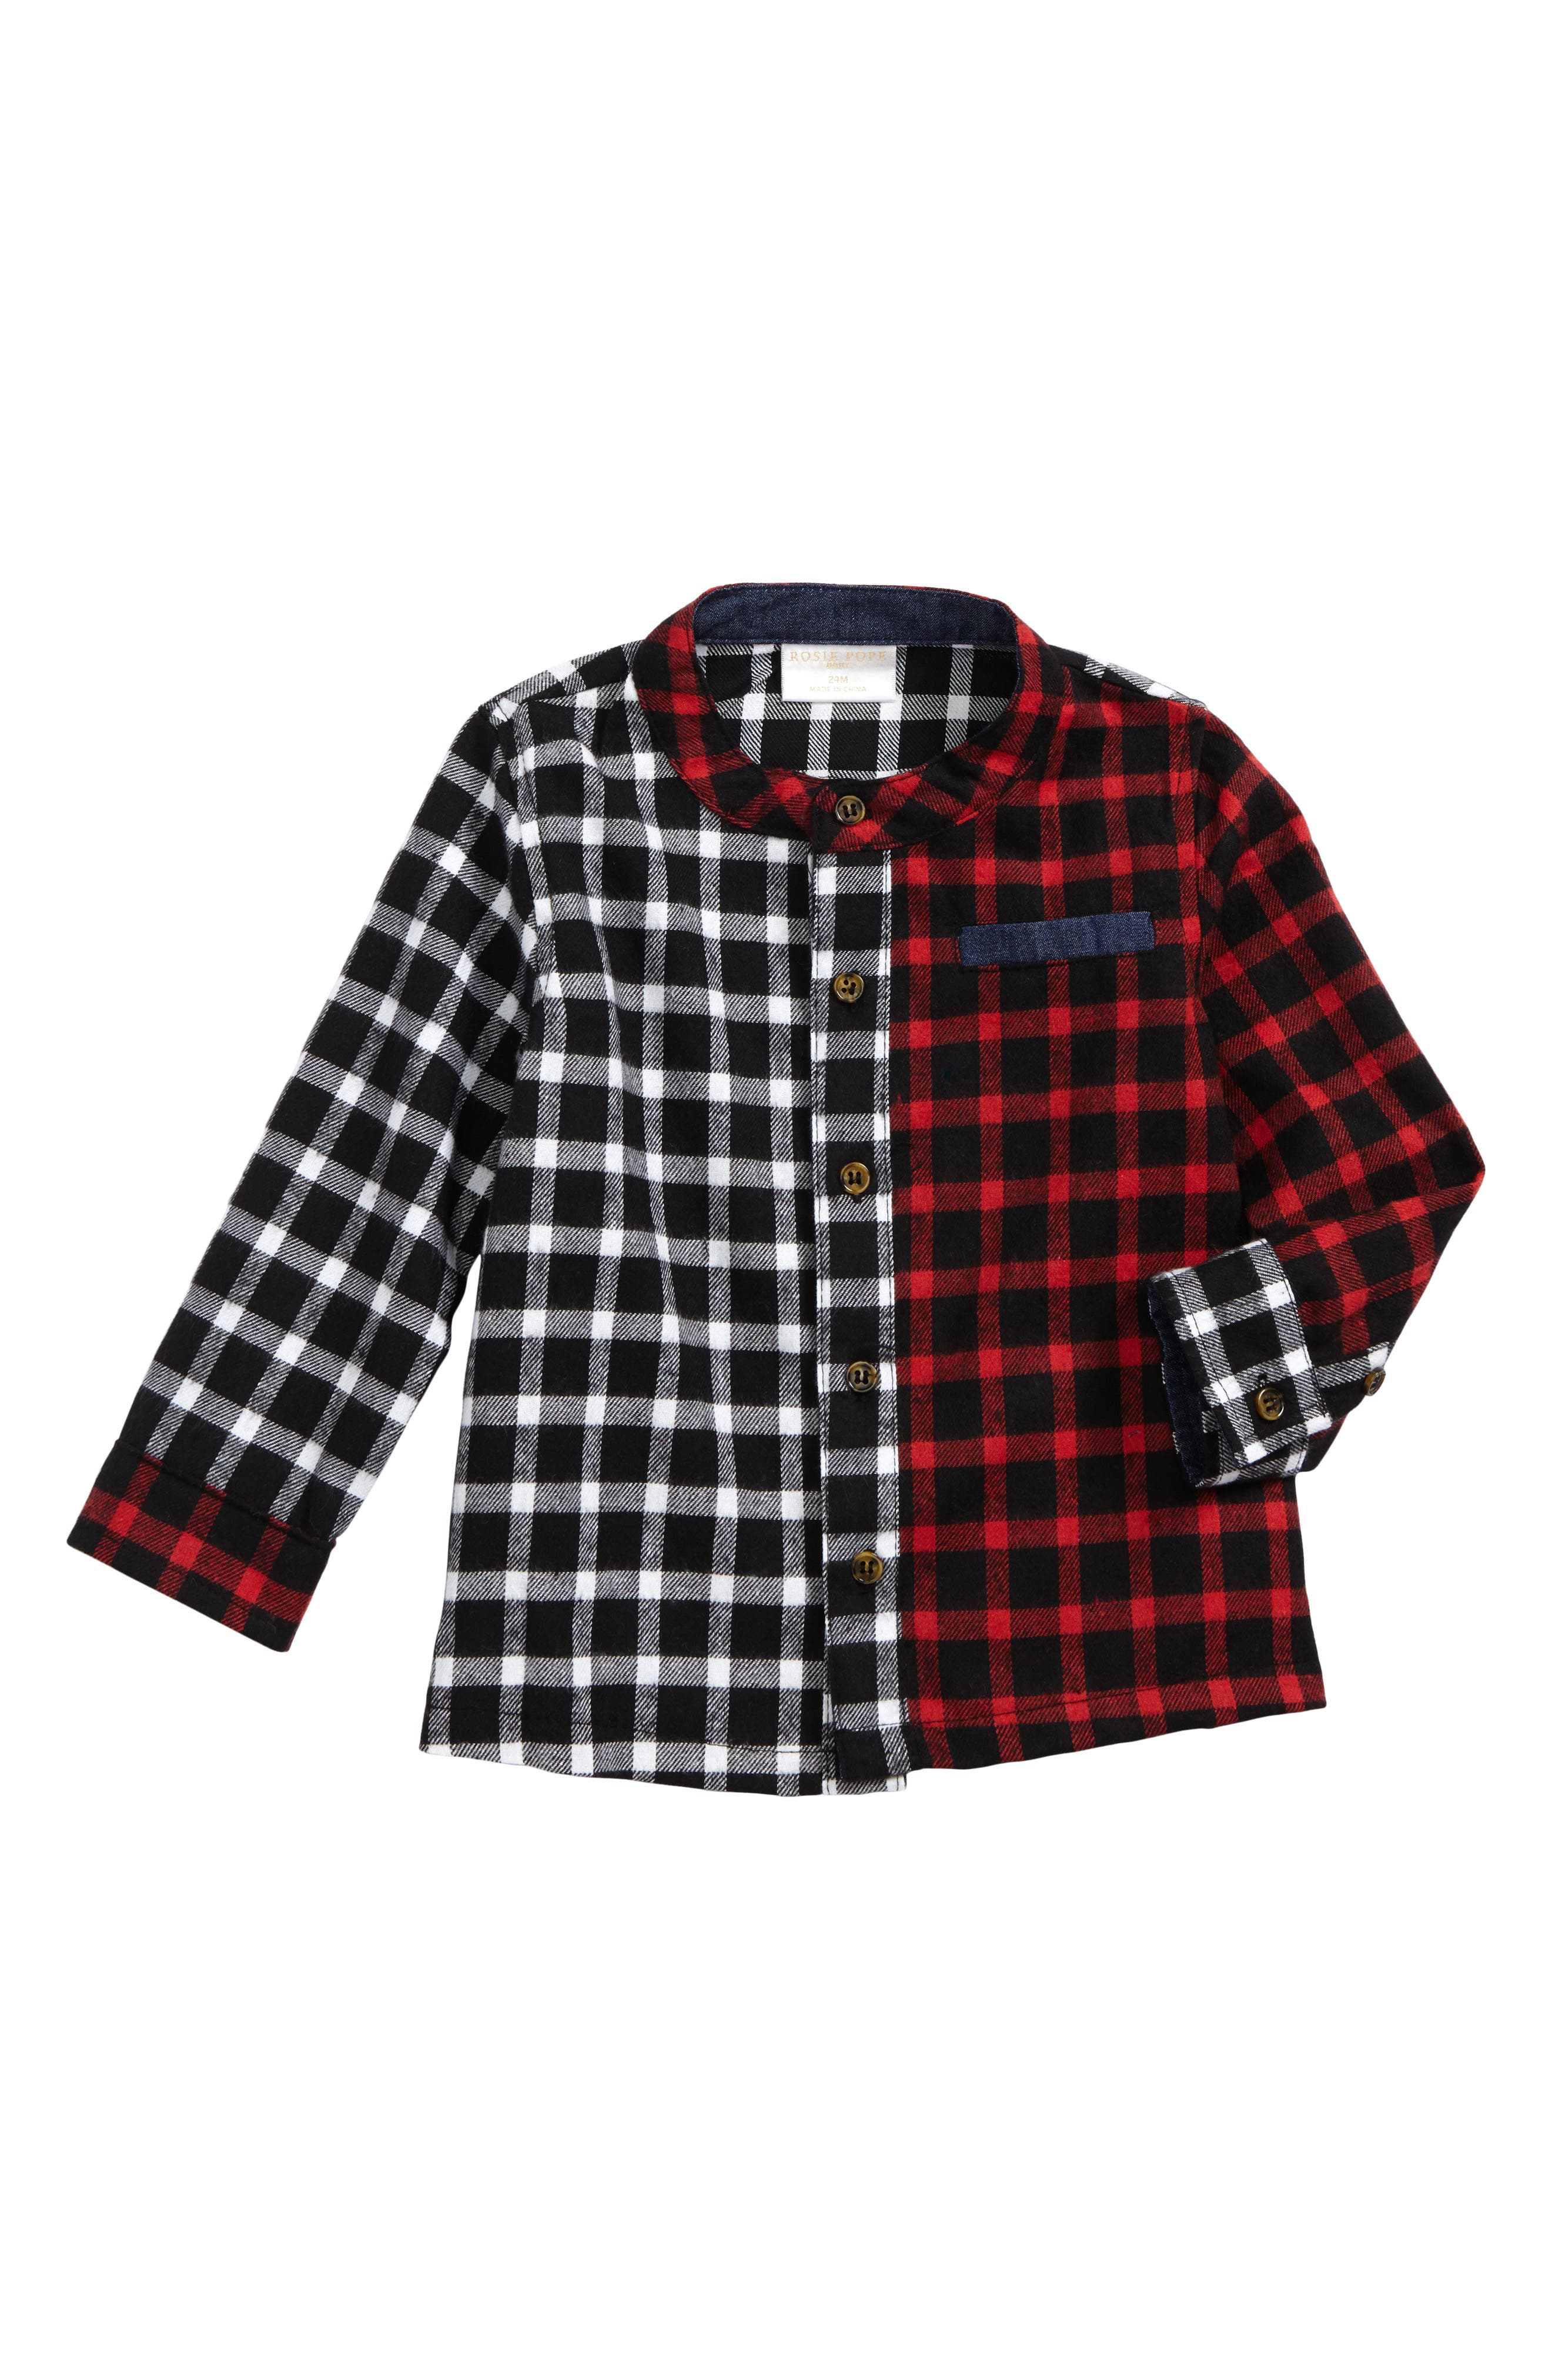 Rosie Pope Plaid Woven Shirt (Baby Boys)